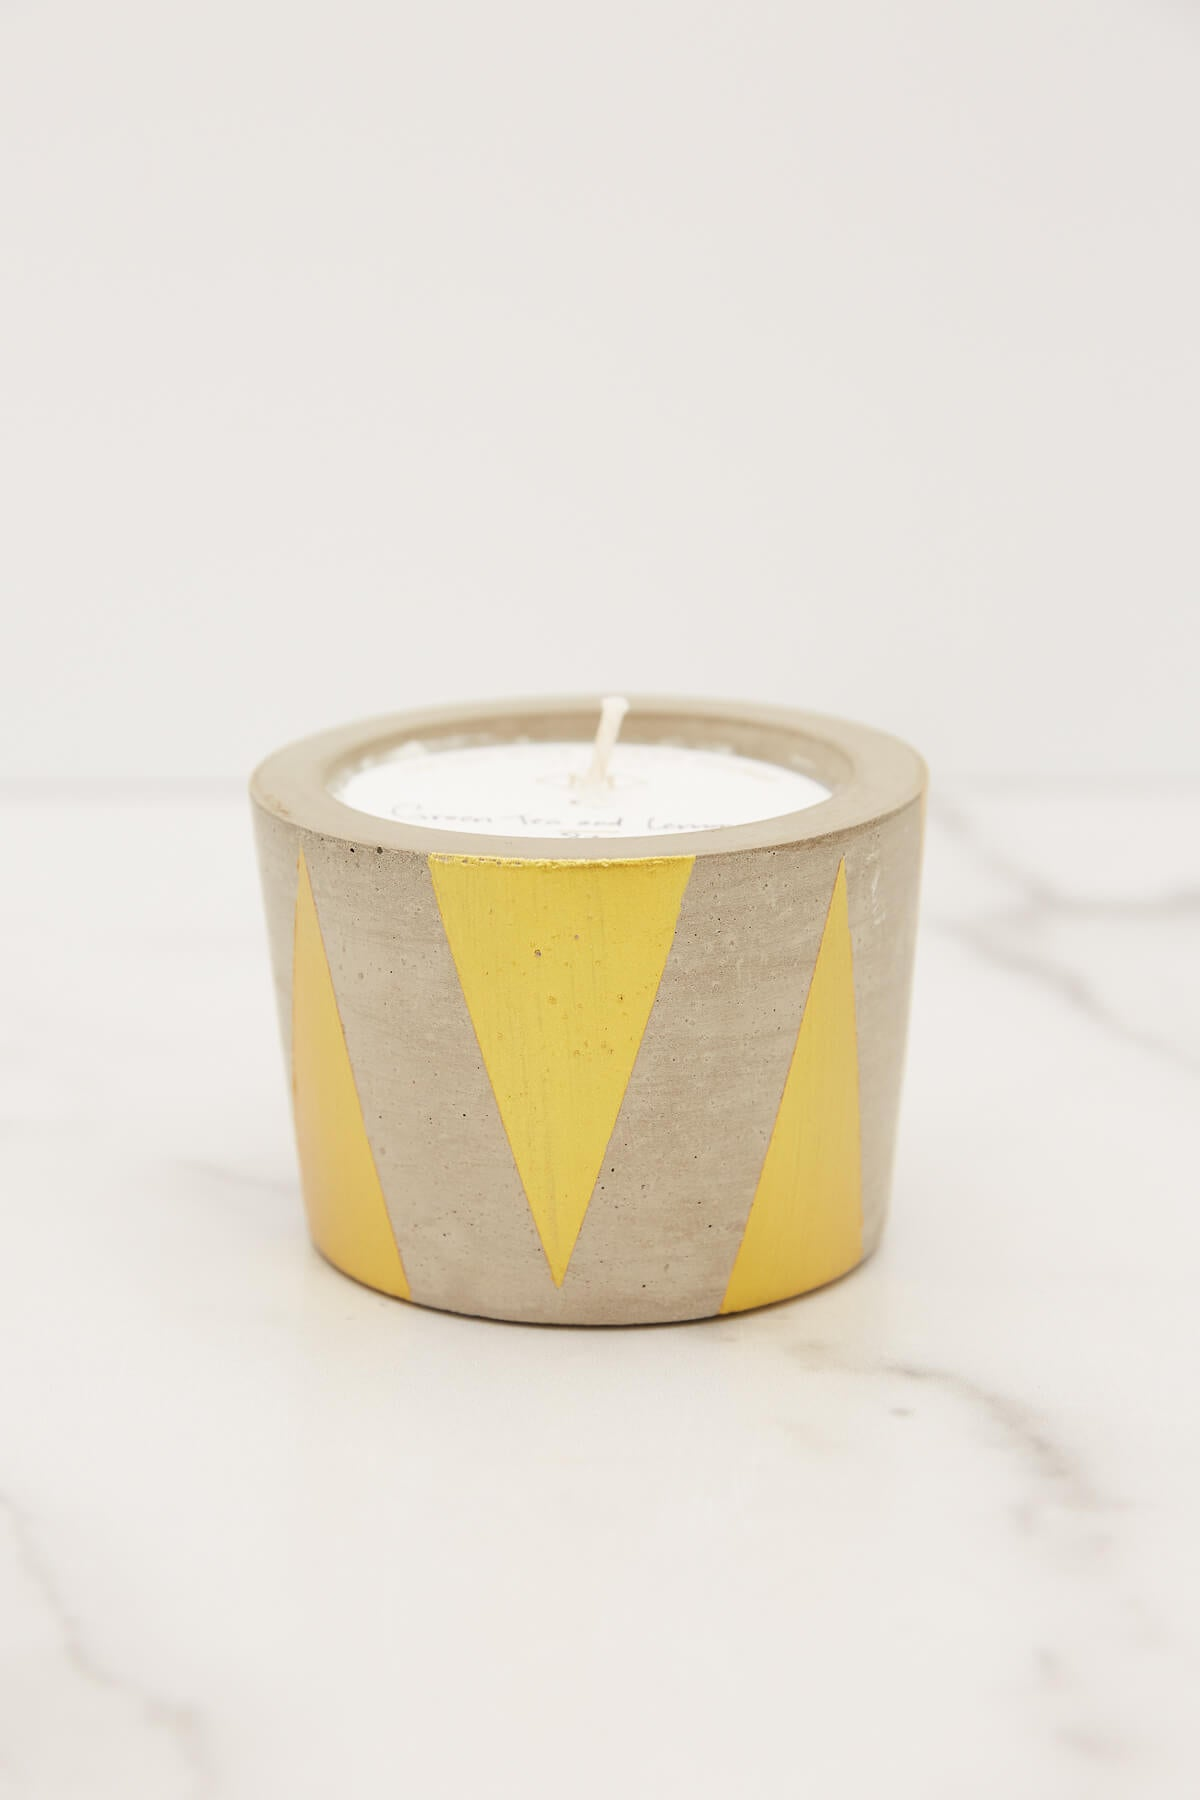 MacBailey Candle Co. Small Green Tea + Lemongrass Gold Triangle Candle